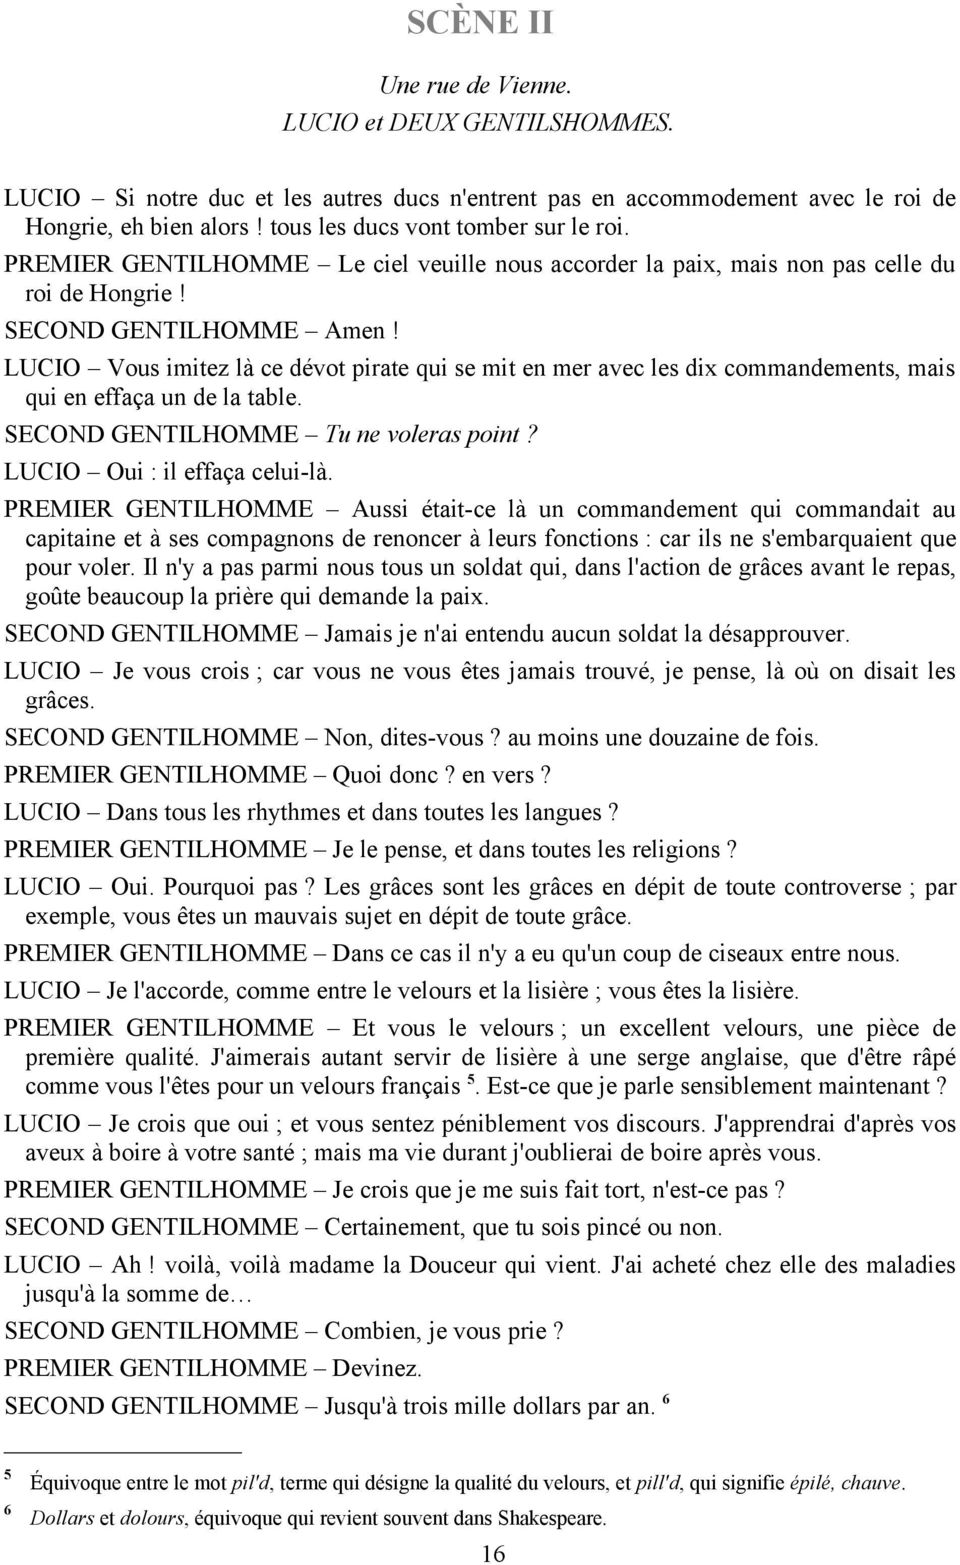 LUCIO Vous imitez là ce dévot pirate qui se mit en mer avec les dix commandements, mais qui en effaça un de la table. SECOND GENTILHOMME Tu ne voleras point? LUCIO Oui : il effaça celui-là.